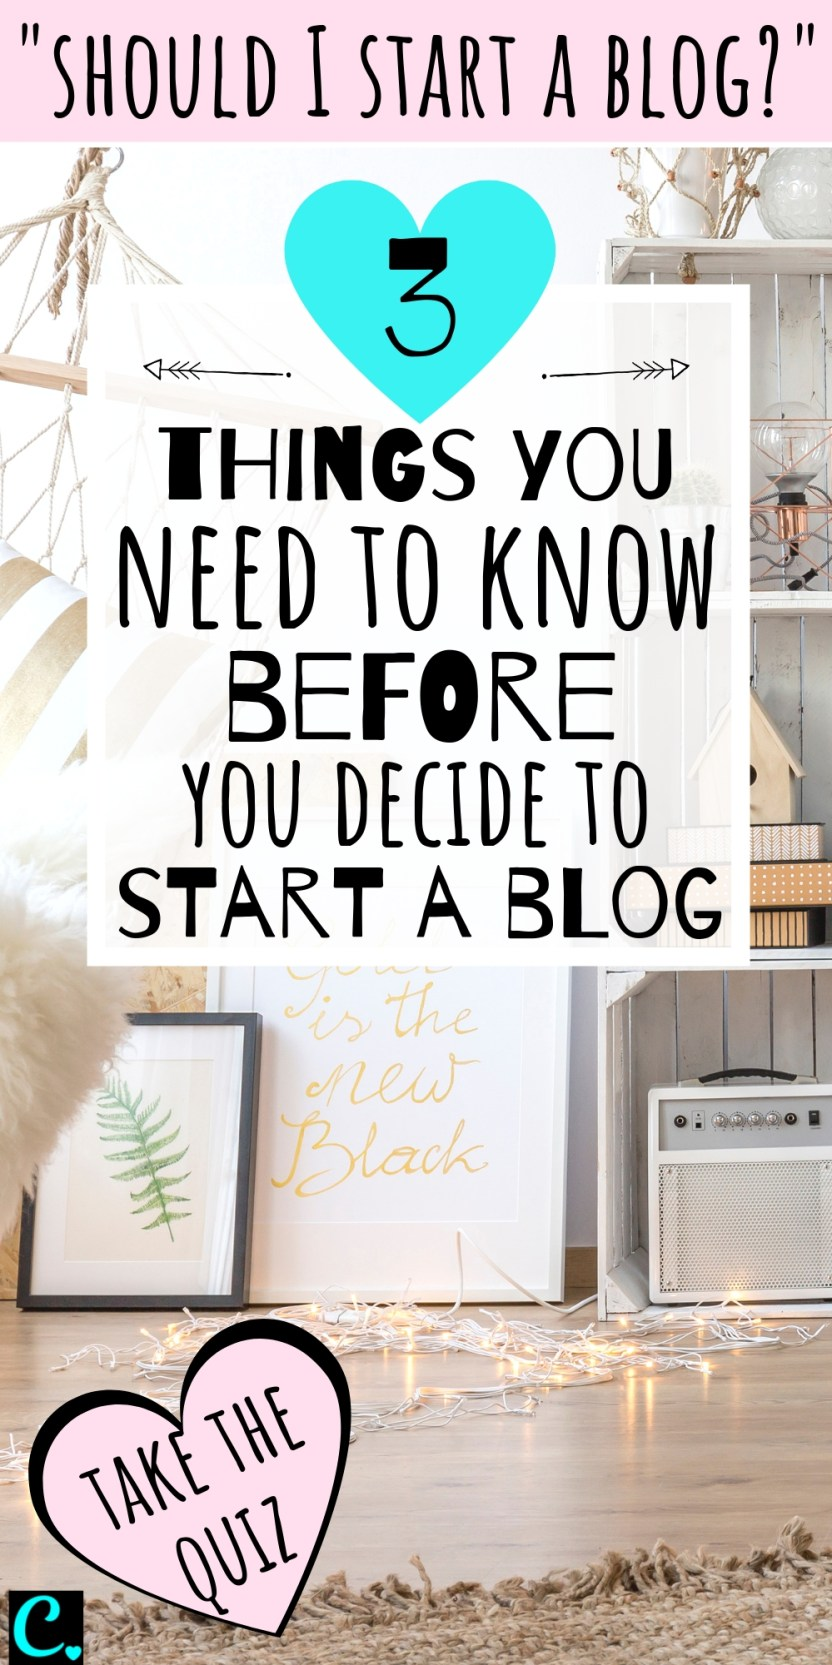 """If you're asking """"should I start a Blog?"""" then you need to know these top 3 things before you decide to become a blogger! You can also take the fun blogging quiz to find out if you have what it takes to start, grow & maintain a successful blog! #startablog #captivatingcrazy"""